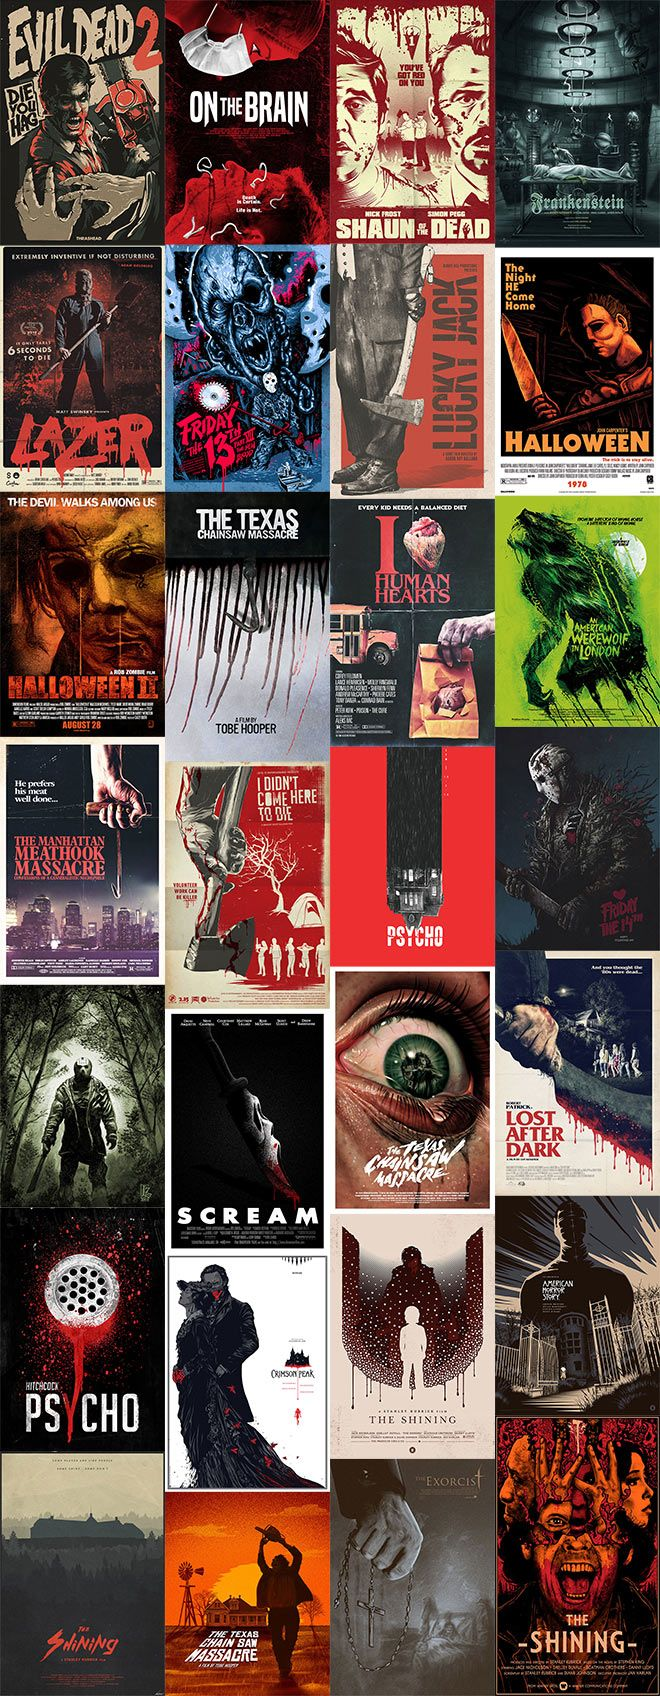 The run up to Halloween is the perfect time to absorb some inspiration from horror films! Designers, artists and illustrators love to produce fan art for their favourite movies, and the scary film genre provides plenty of creative avenues for them to explore. In today's showcase I present 30 freakishly good alternative movie posters and …